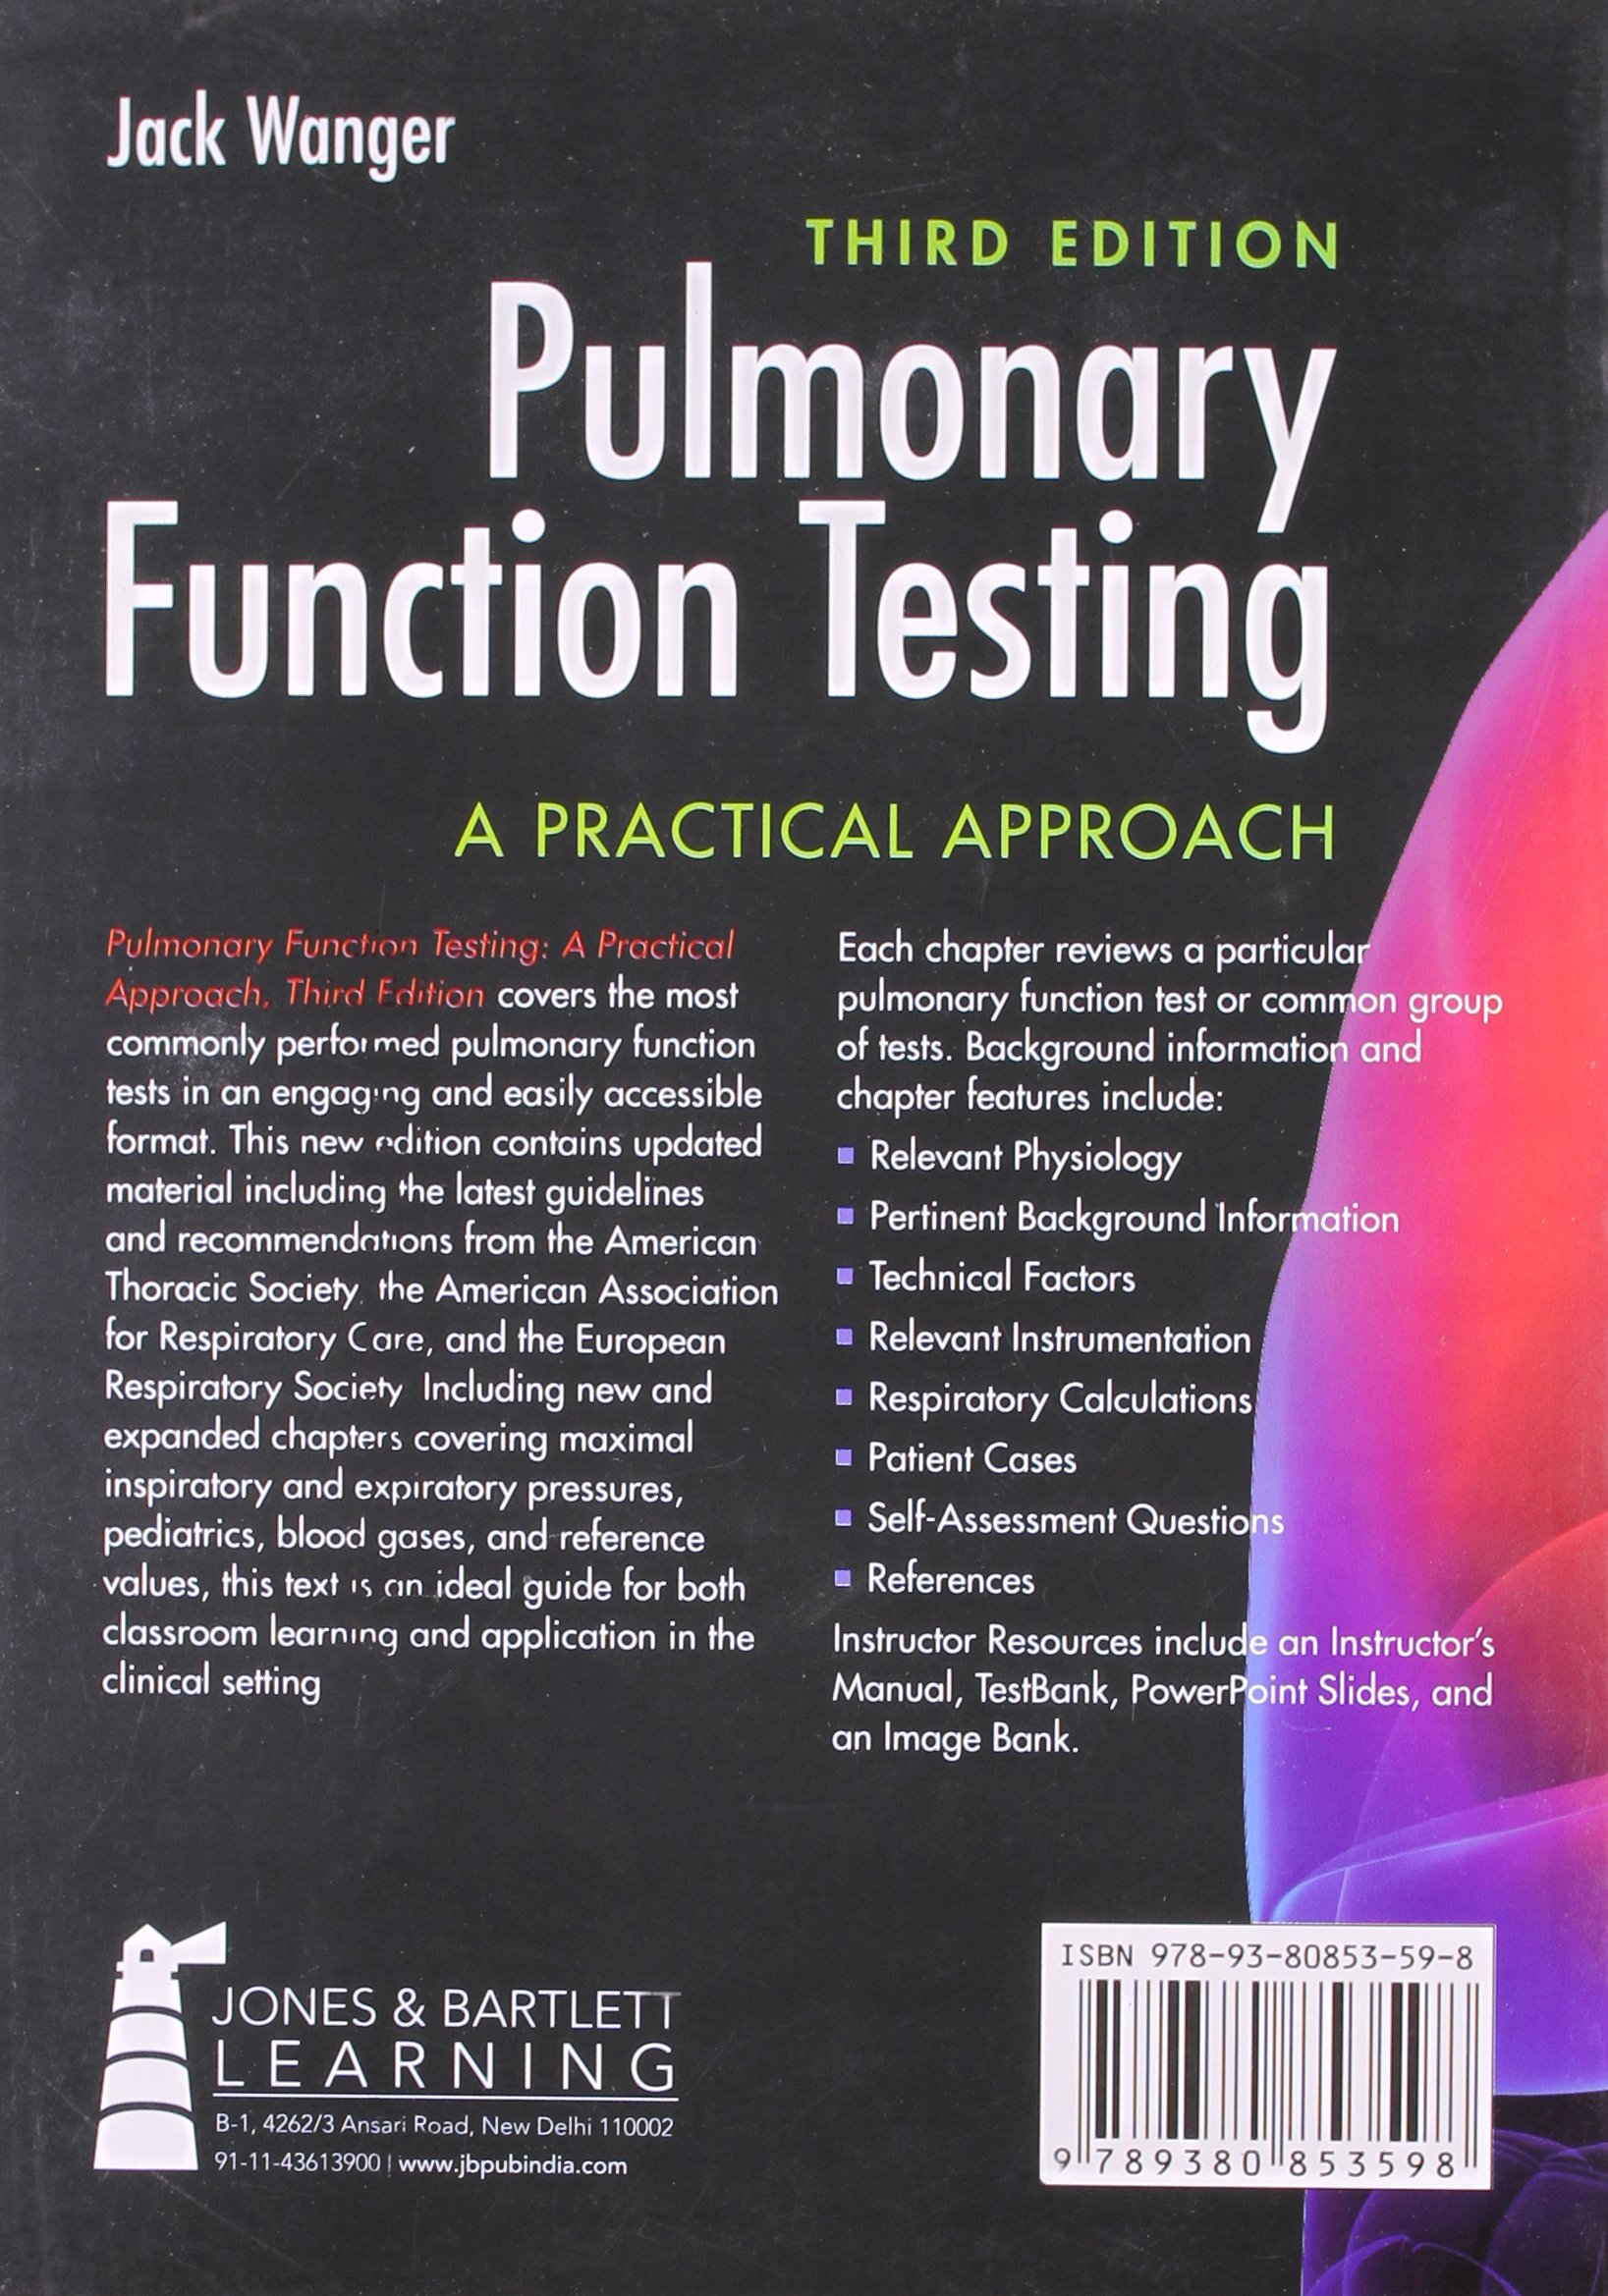 Pulmonary Function Testing: A Practical Approach, 3rd/e: Jack Wanger:  9789380853598: Amazon.com: Books